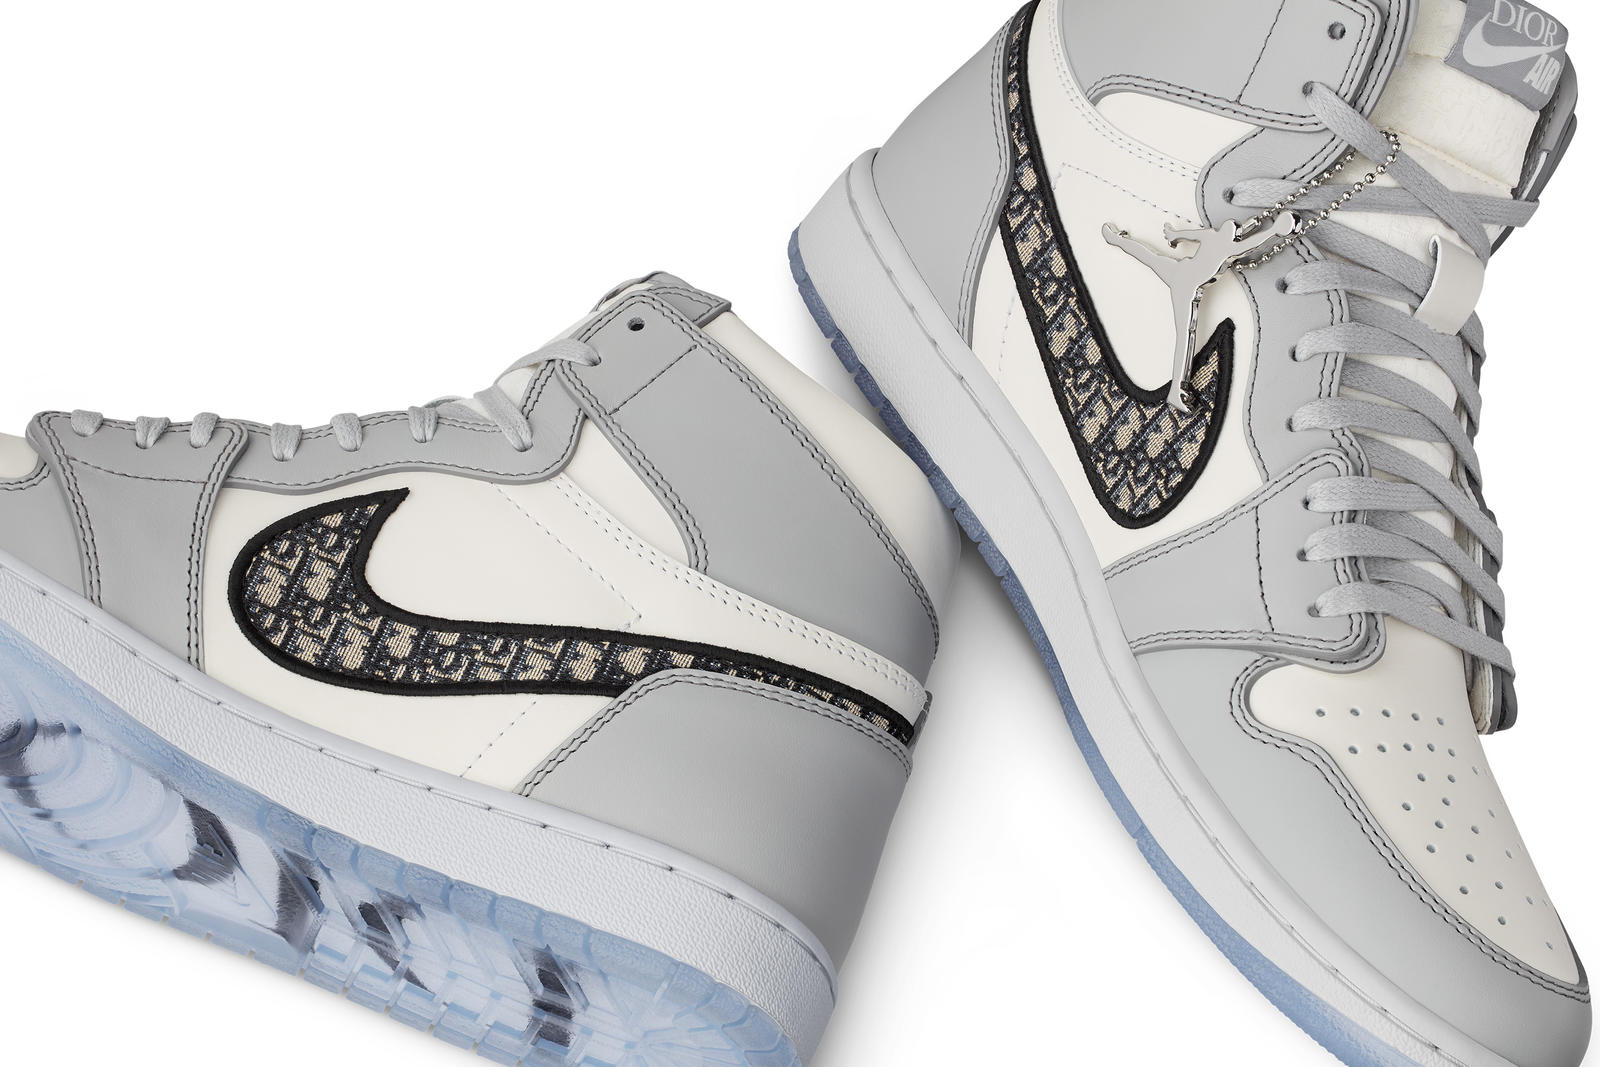 【近日発売予定】 Dior x AIR JORDAN 1 HIGH & LOW